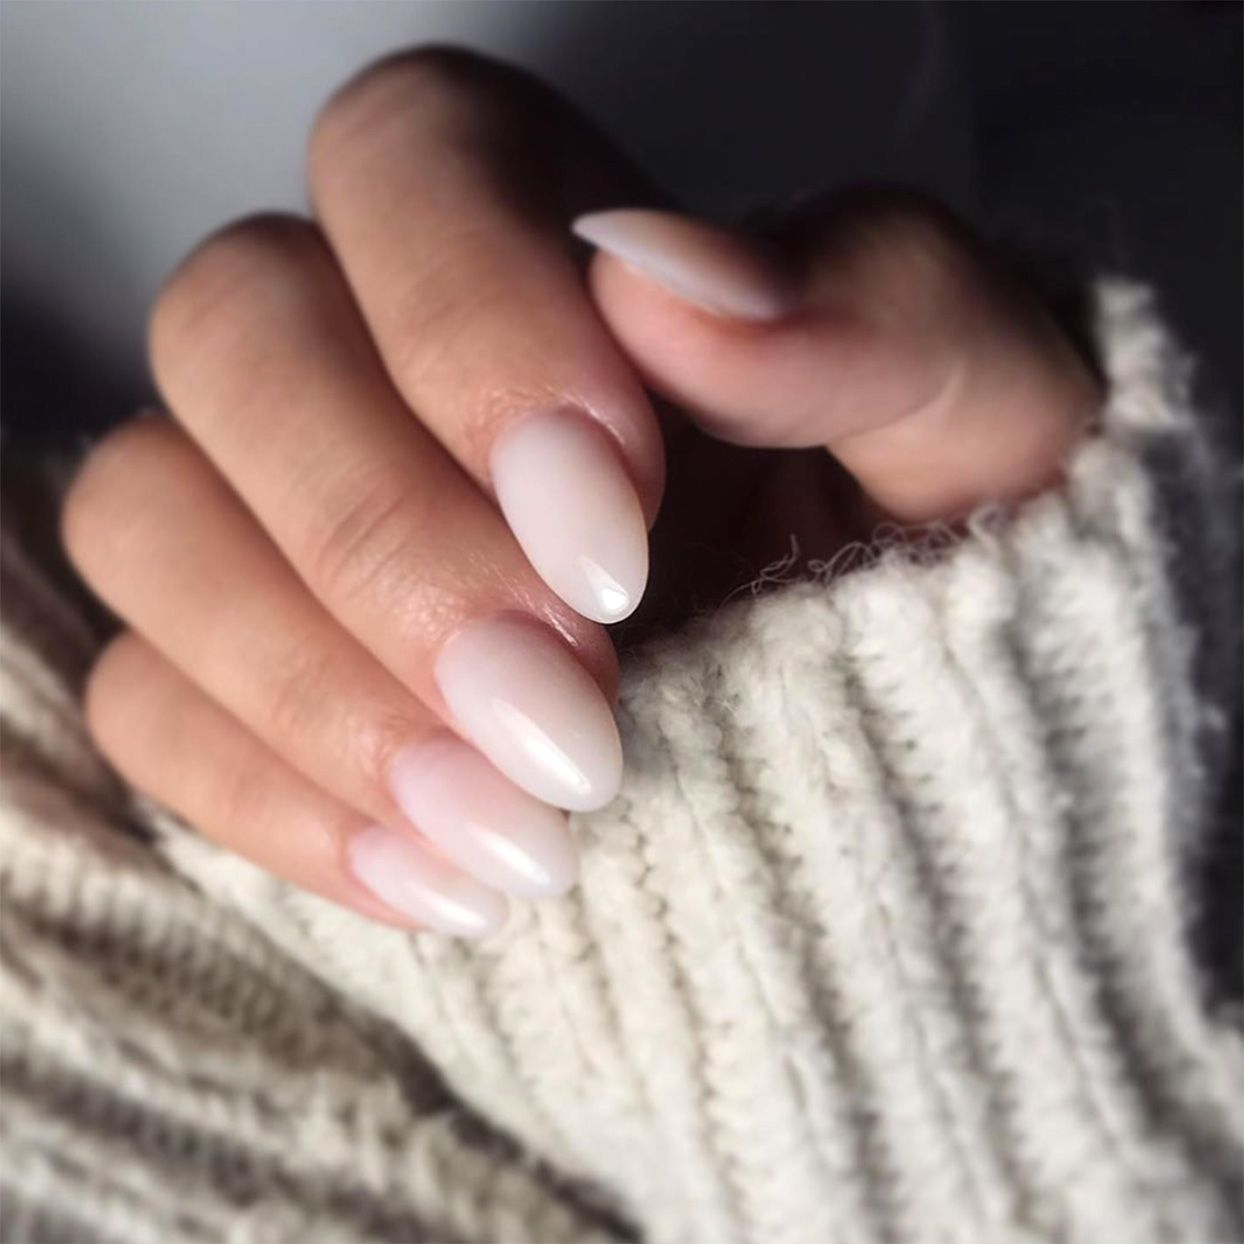 Milky Nails Is The New Manicure Trend Everyone Should Try In 2020 Pink Manicure Manicure Nails